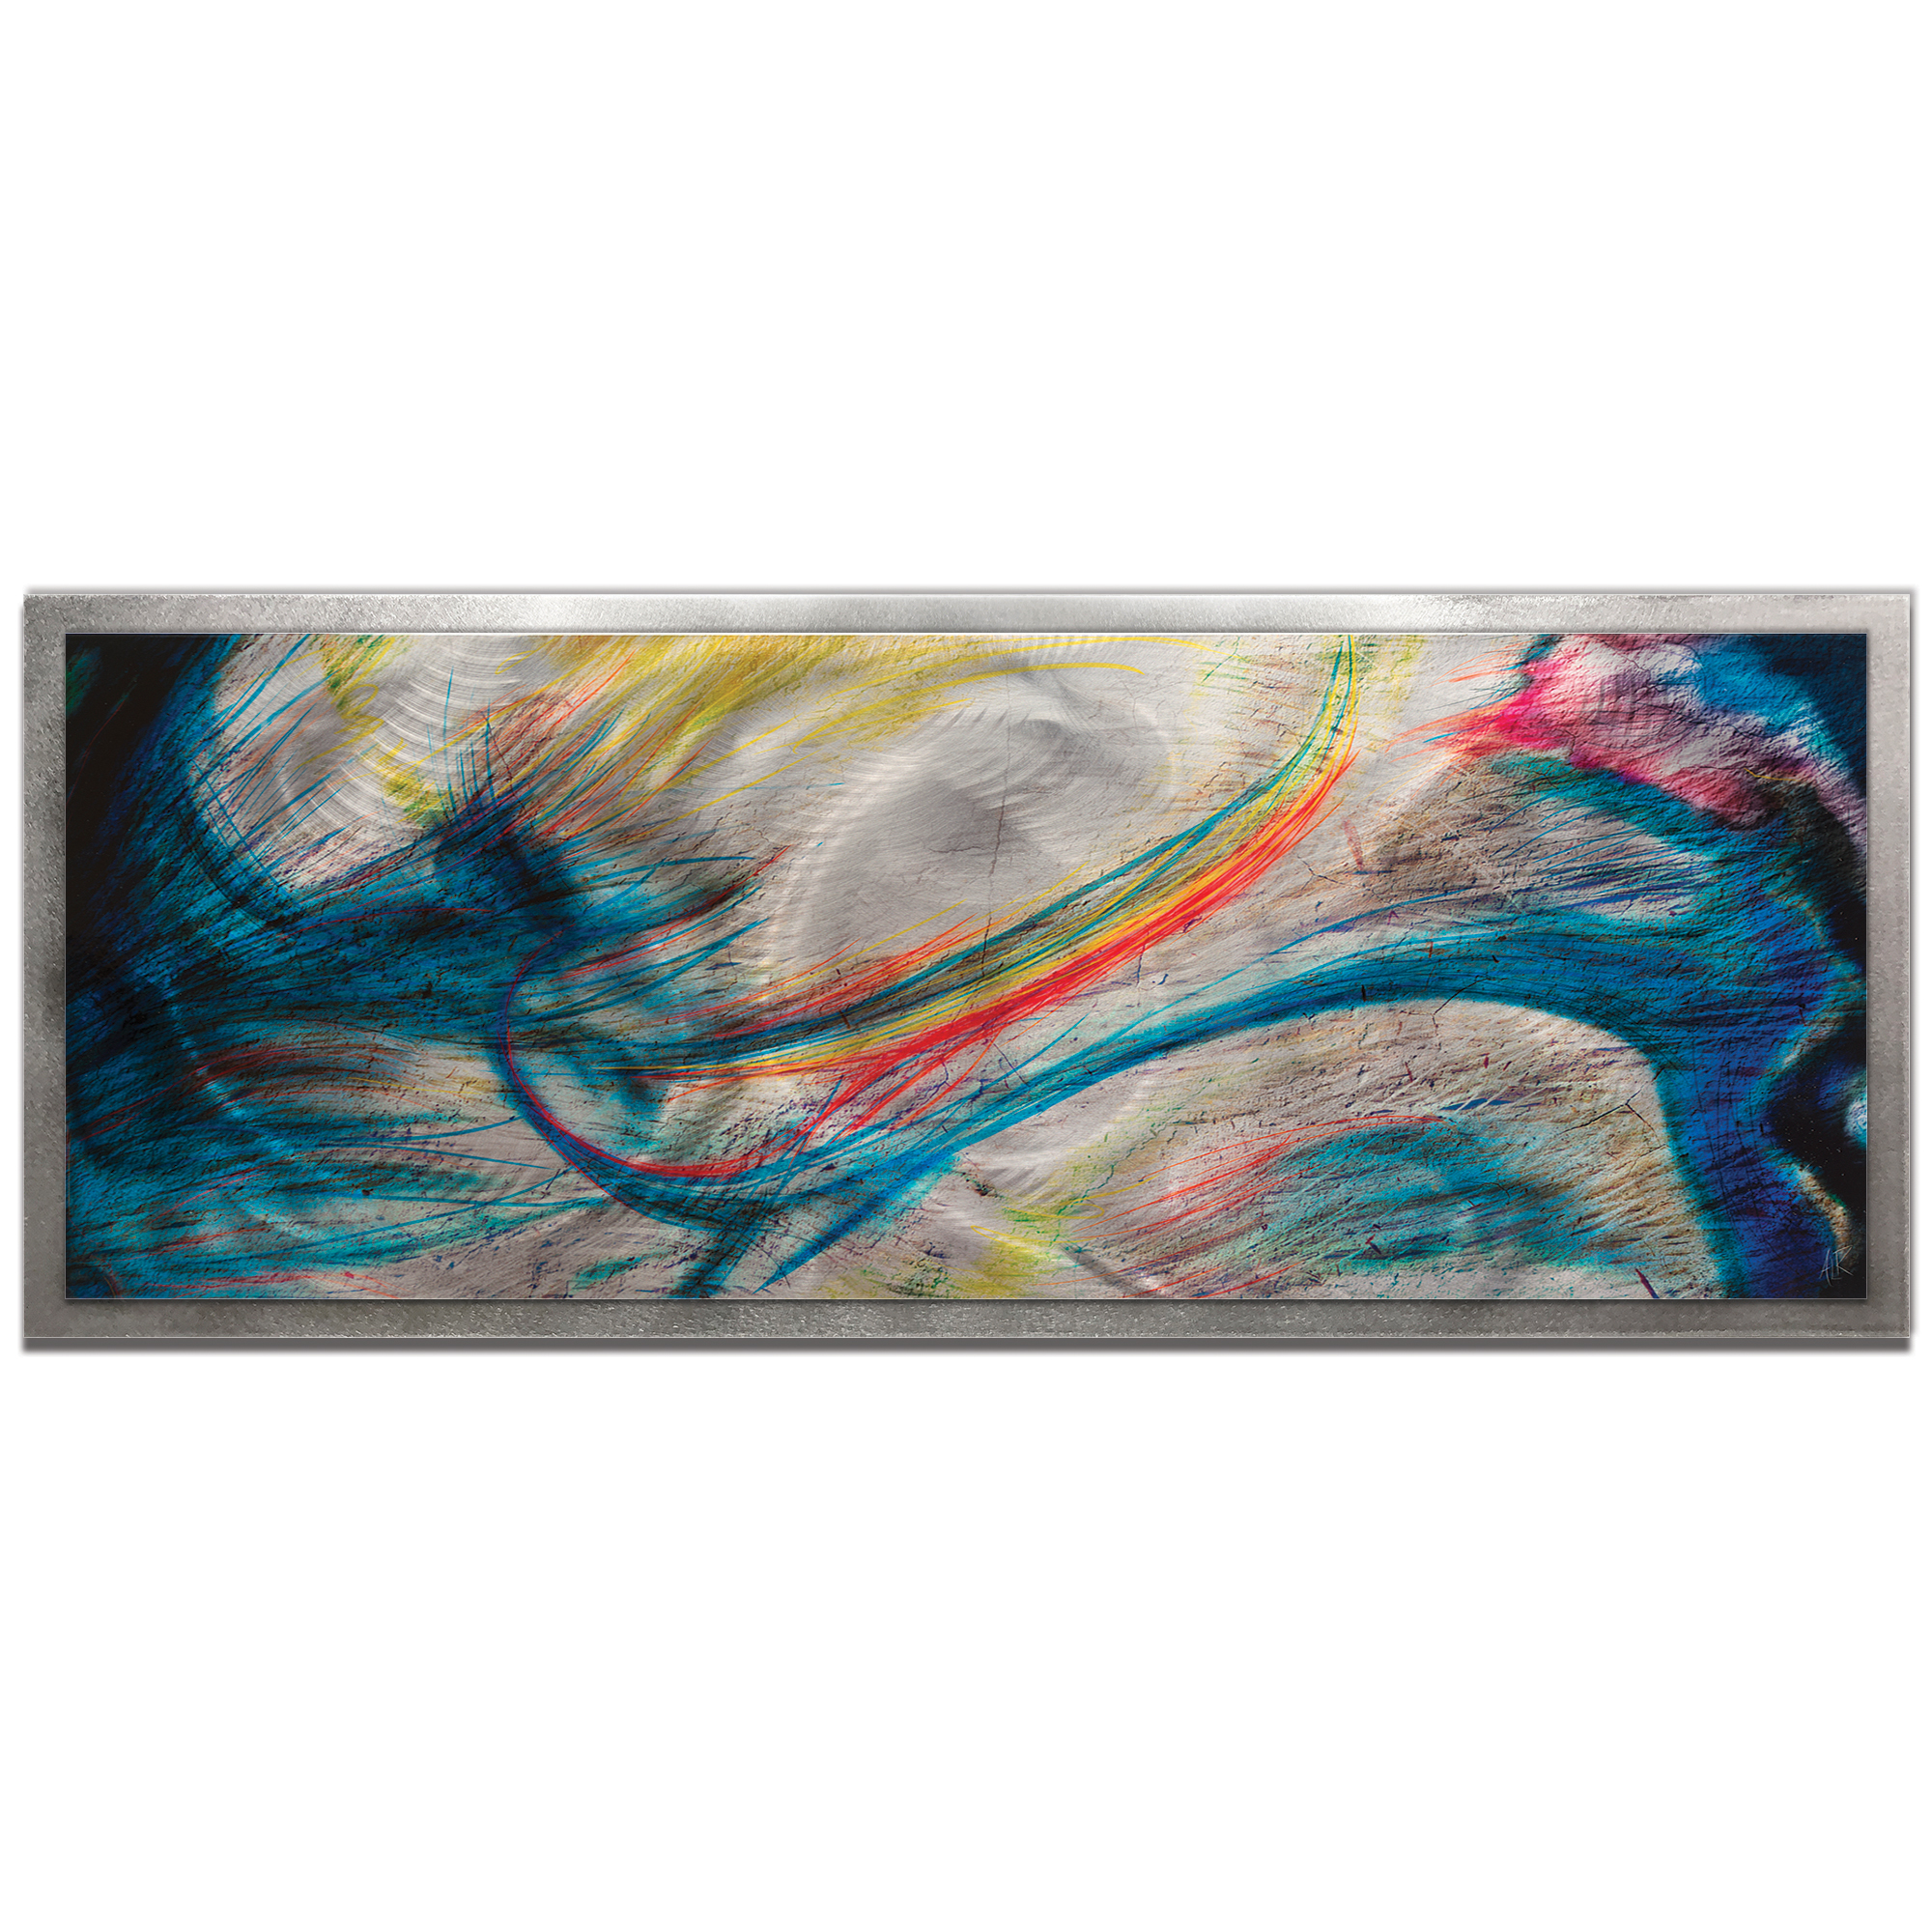 NAY 'Grace and Virtue Framed' 48in x 19in Abstract Rainbow Painting Art on Colored Metal